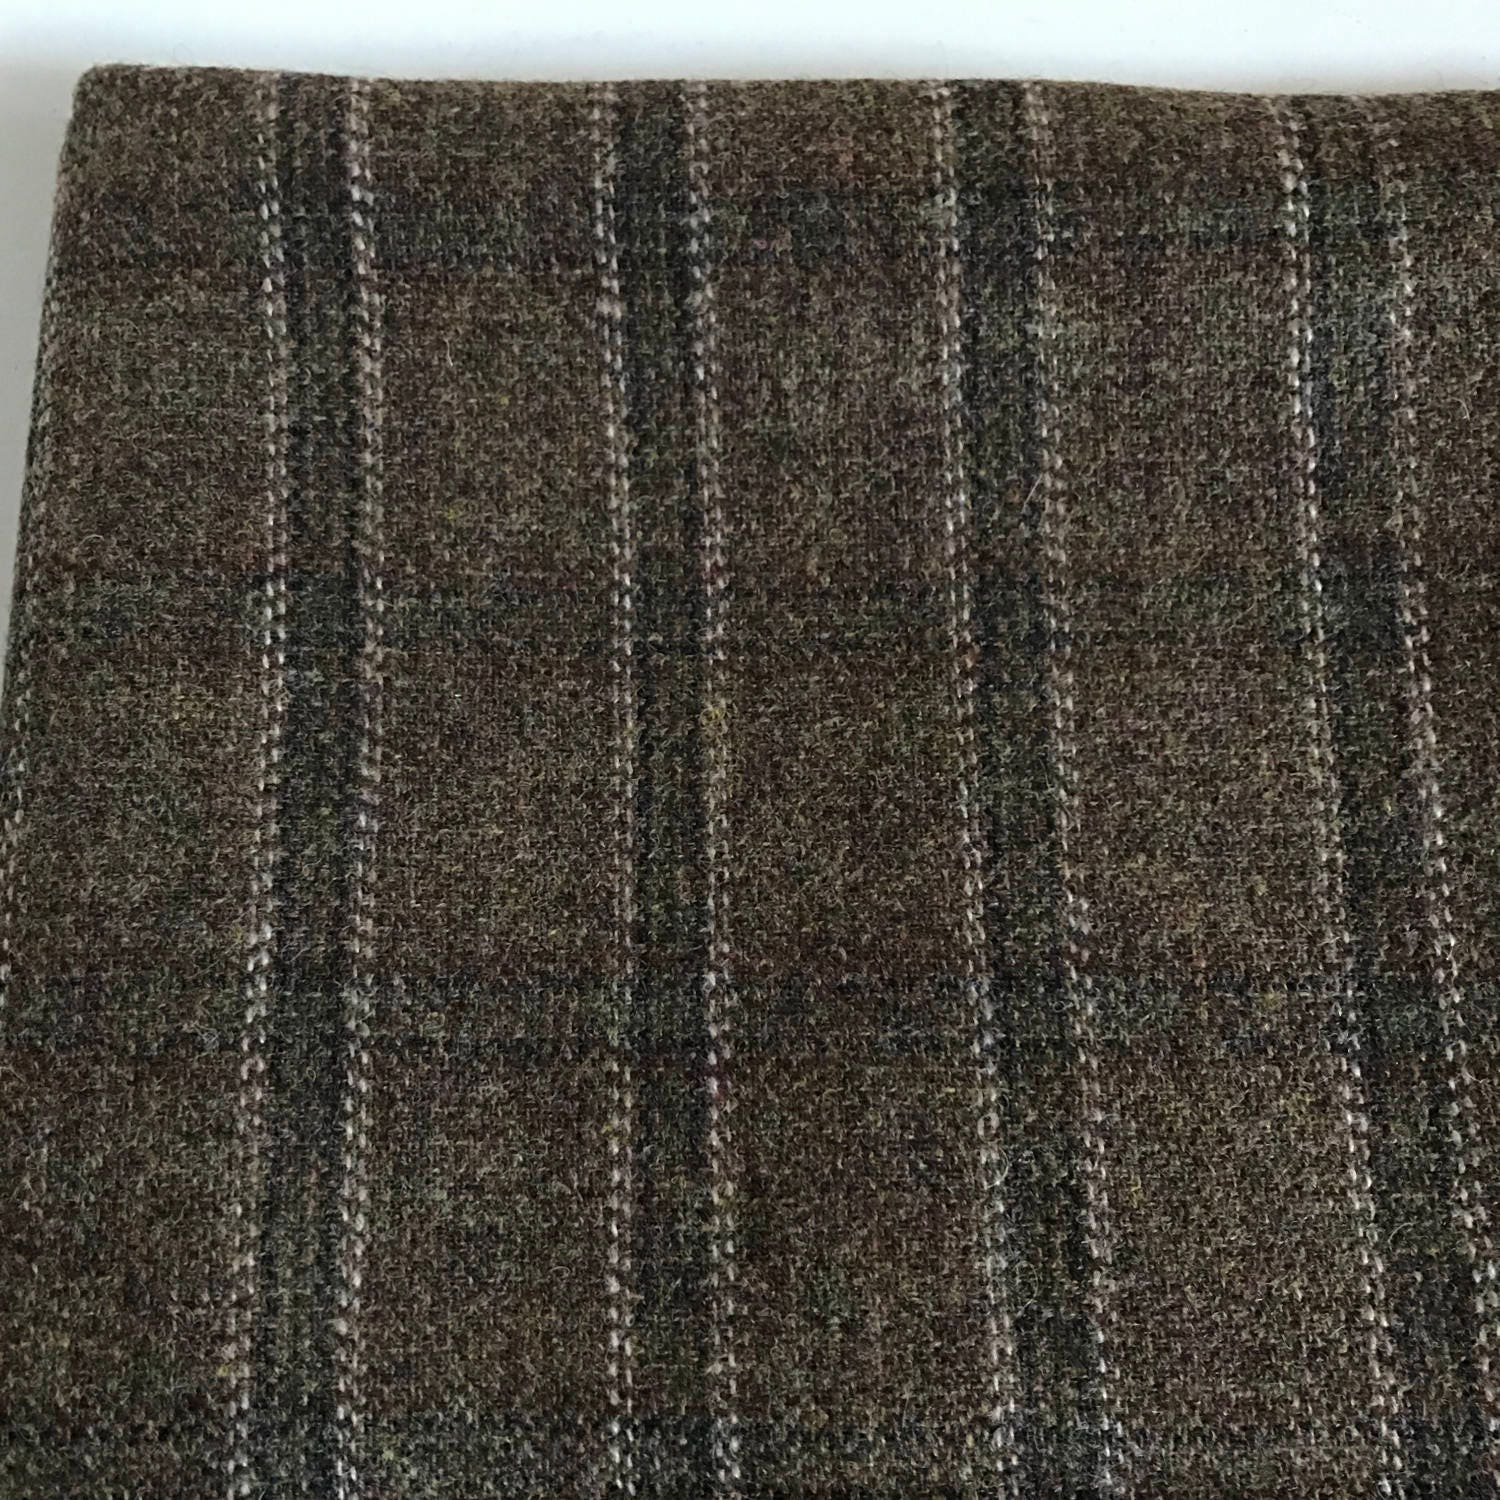 Irish tweed wool fabric -FREE WORLDWIDE SHIPPING- brown